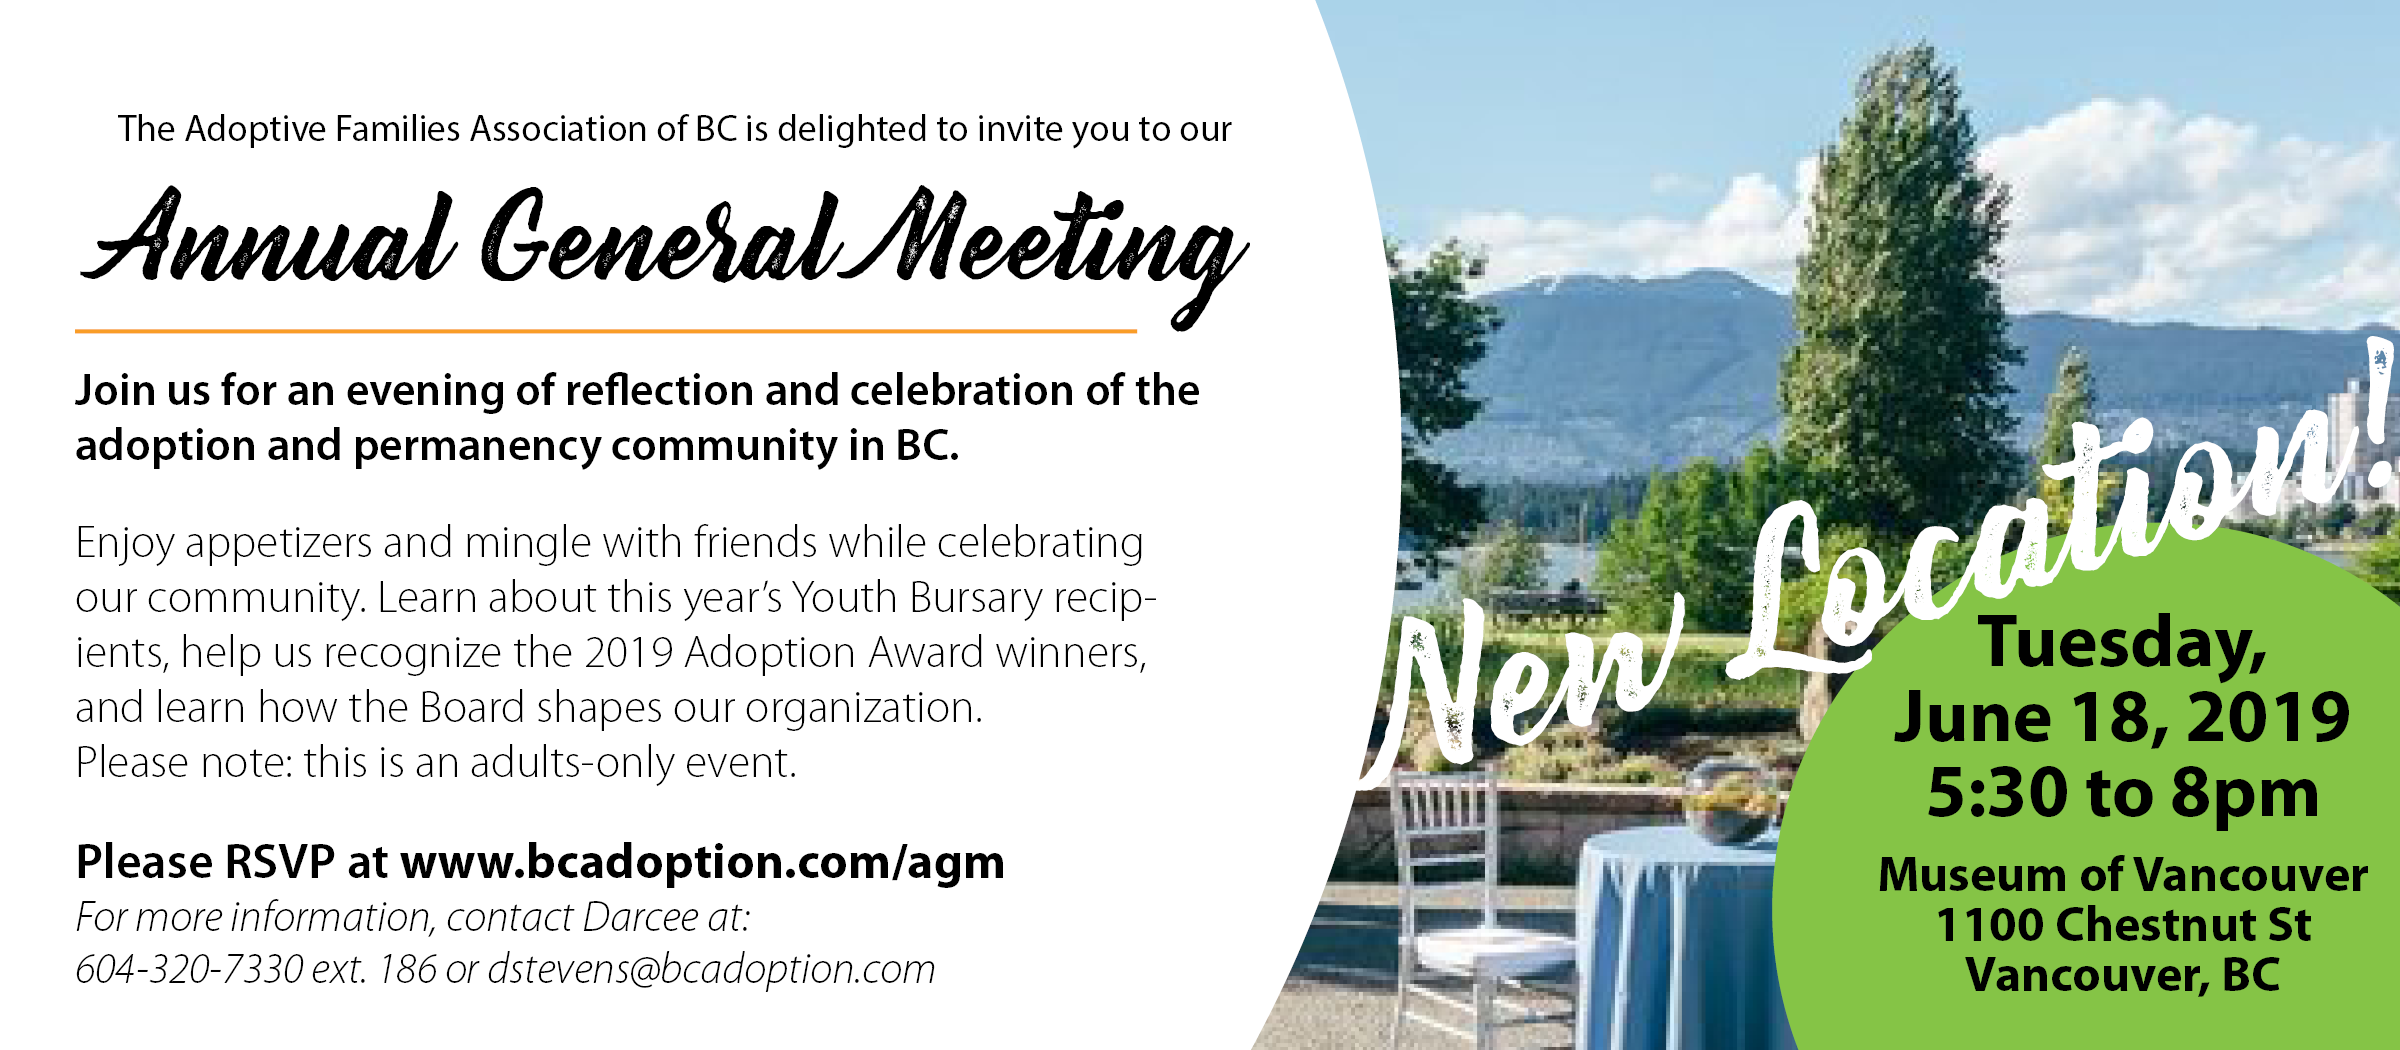 You're invited to our Annual General Meeting